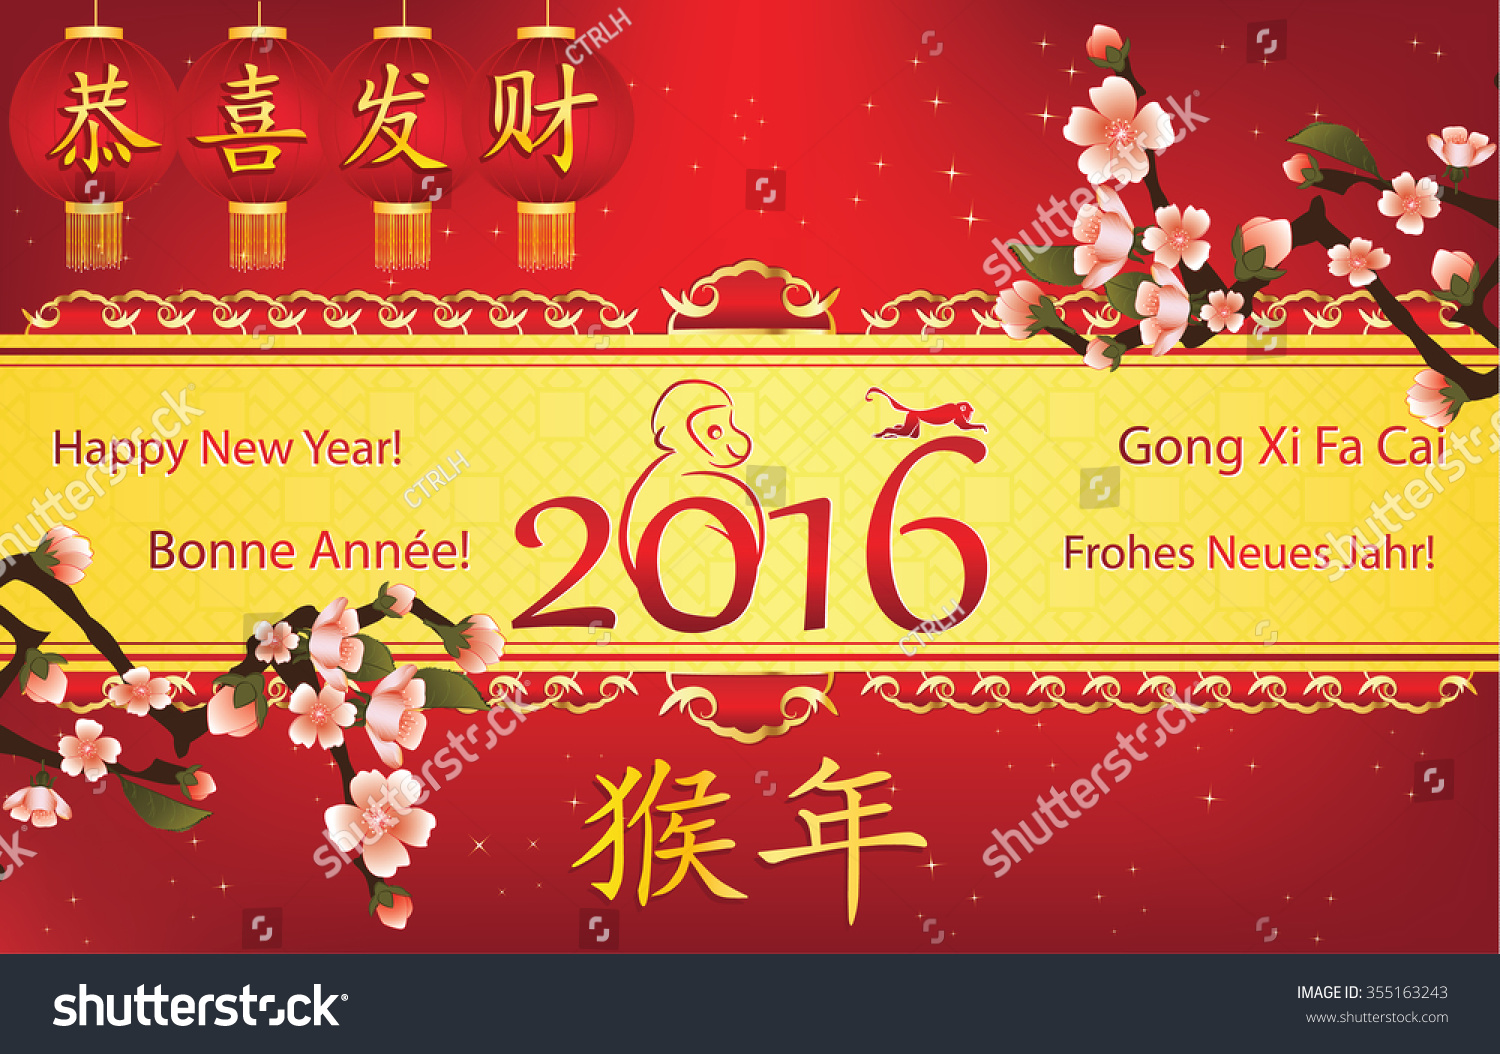 Chinese New Year 2016 printable greeting card Text translation Happy New Year Chinese English French German Year of the Monkey Contains also cherry blossom paper lanterns water auspicious